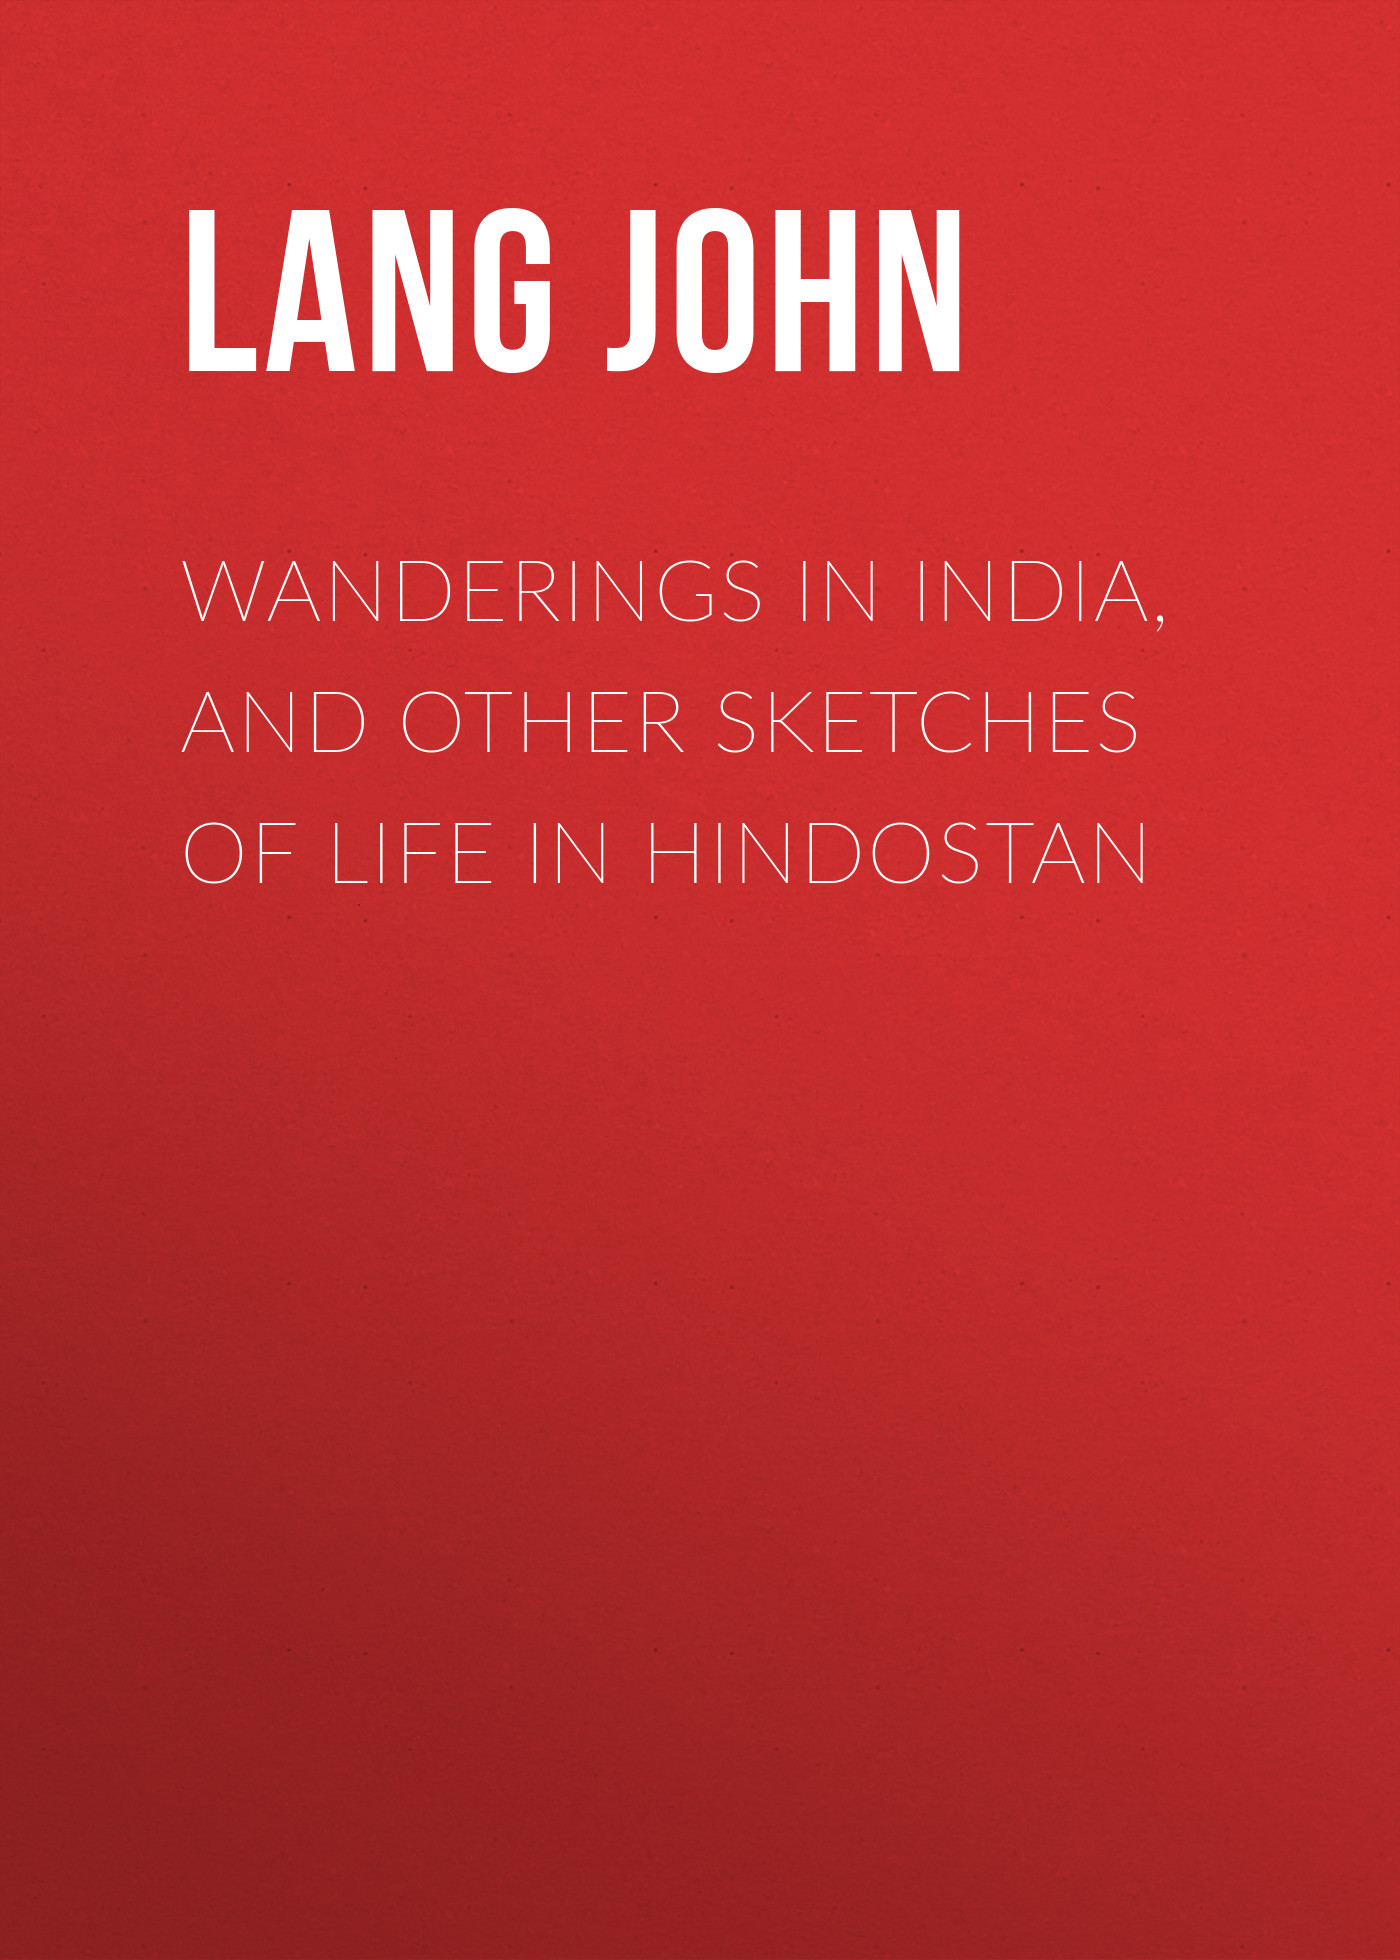 Lang John Wanderings in India, and Other Sketches of Life in Hindostan tribal malnutrition in india